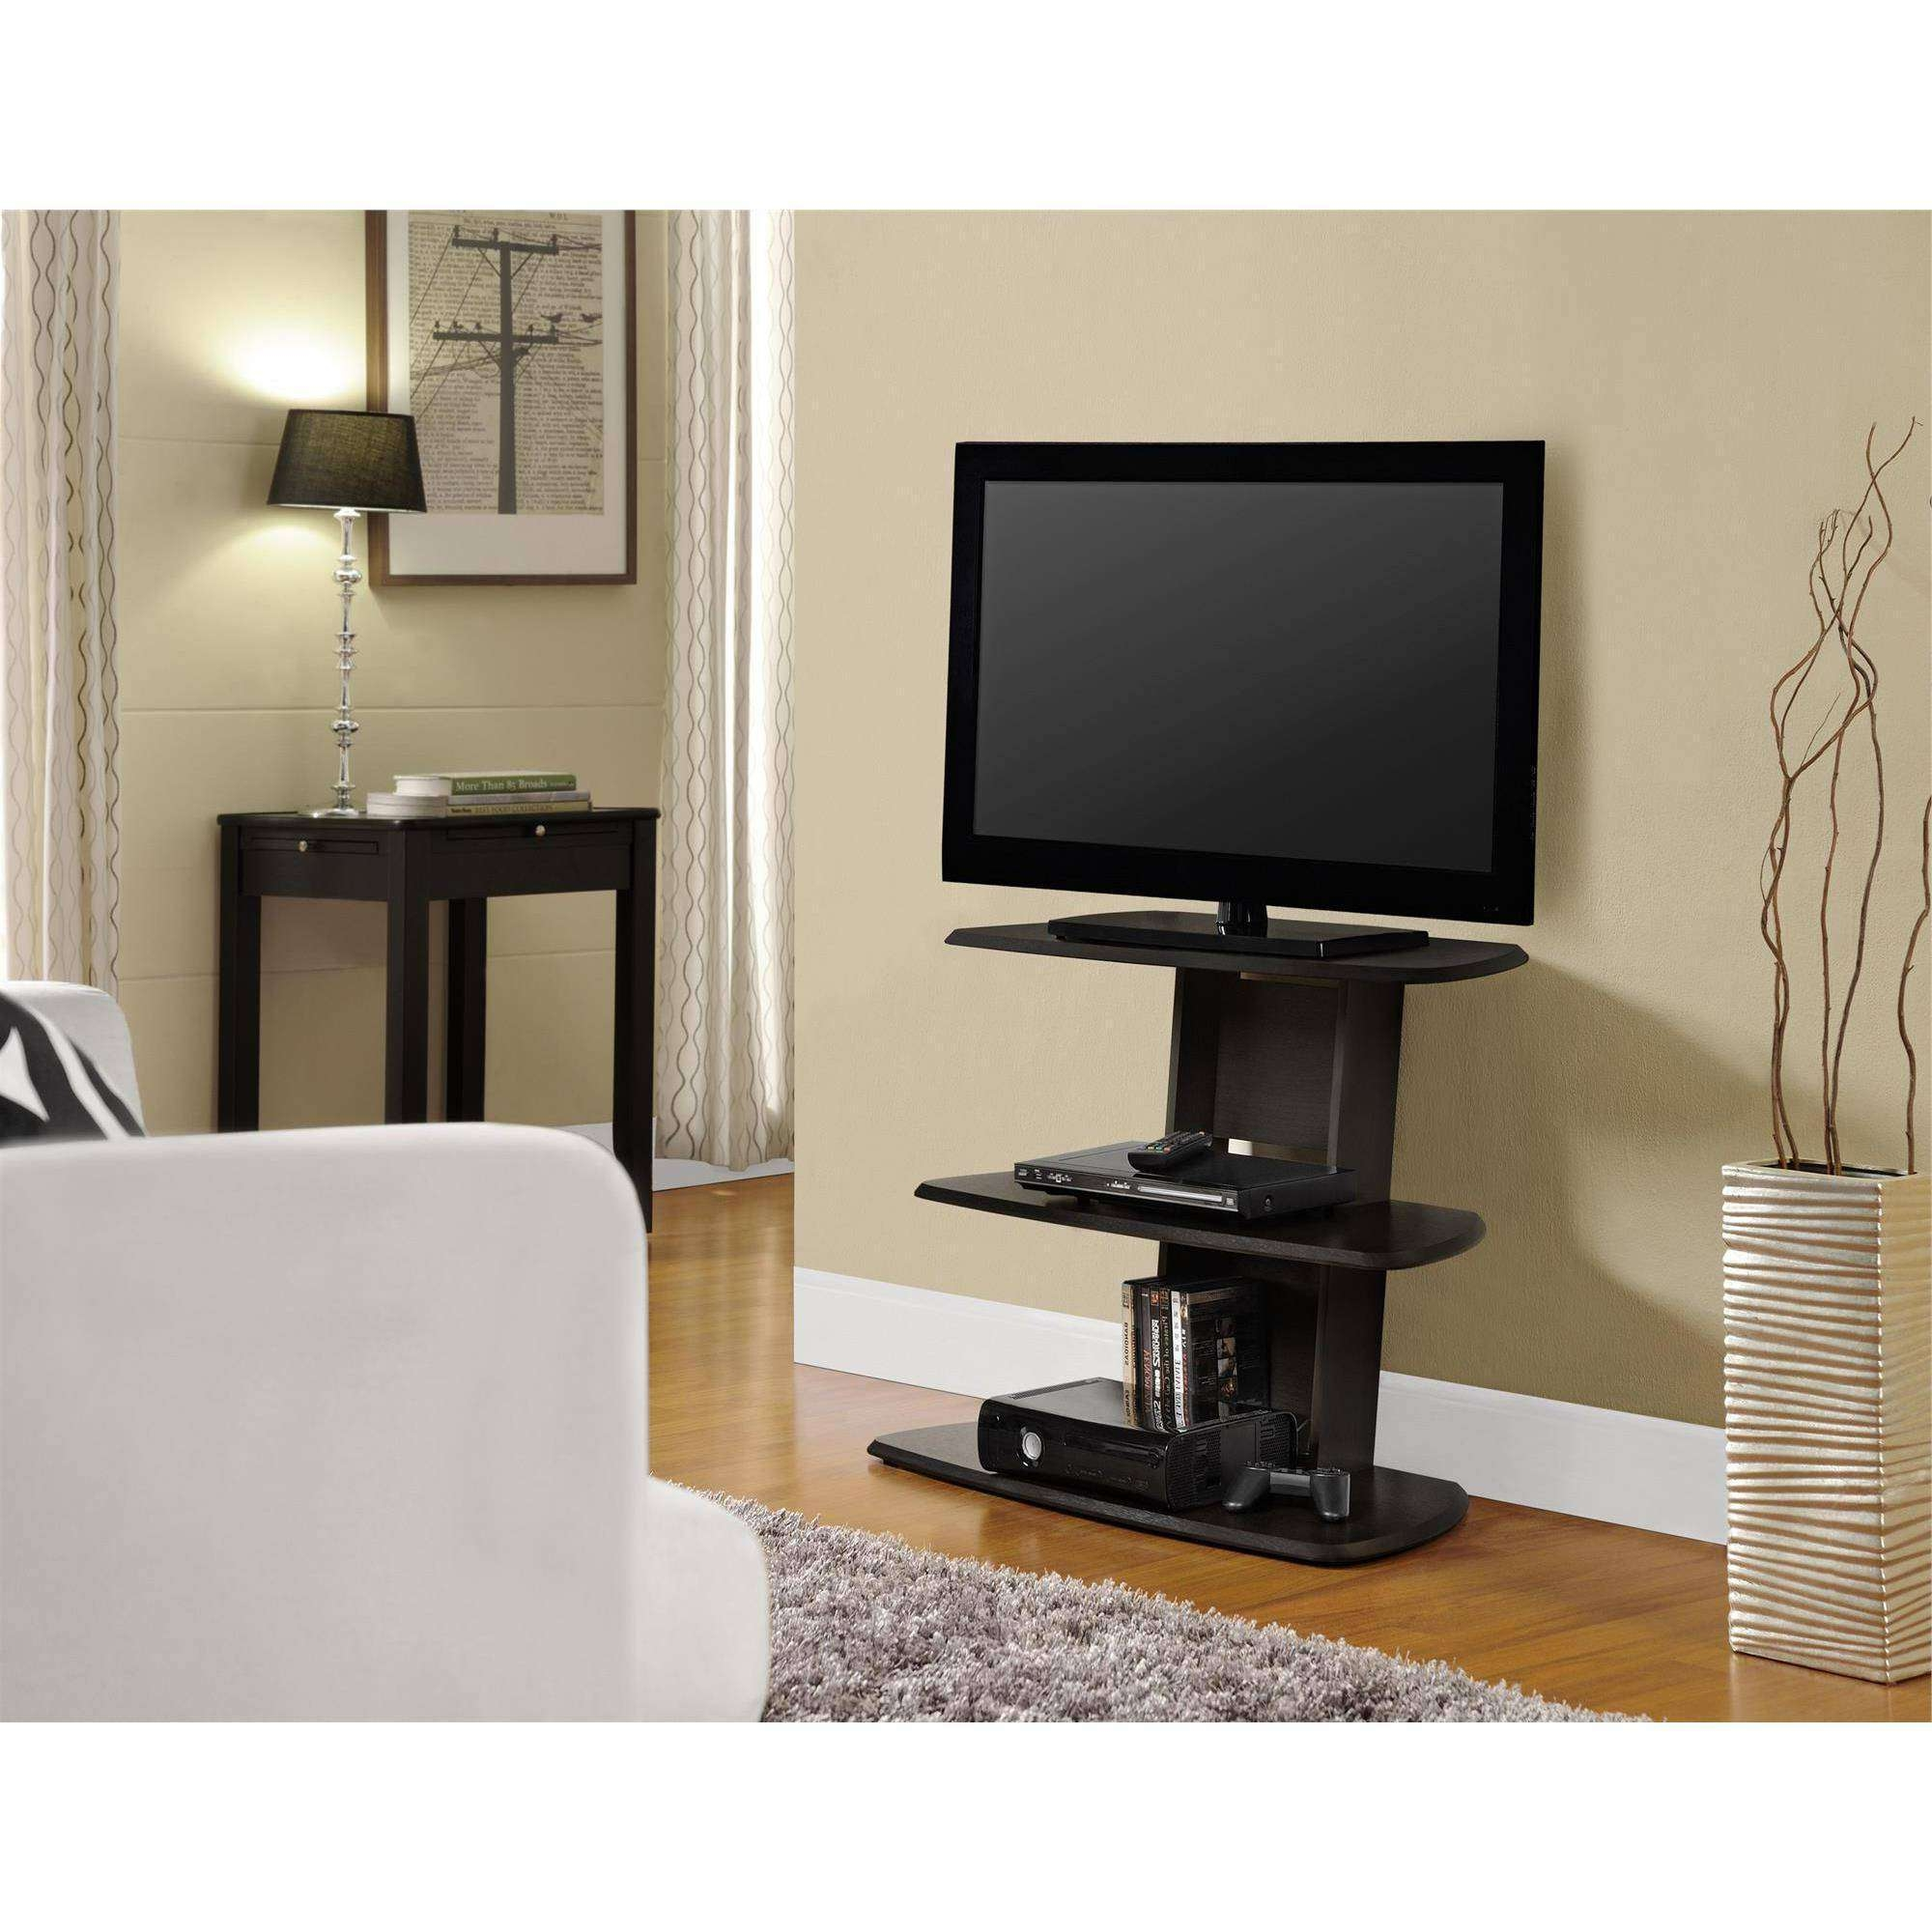 Get Tv Stand 32 Inch For Your Tv – Furniture Depot Within 32 Inch Tv Stands (View 7 of 15)